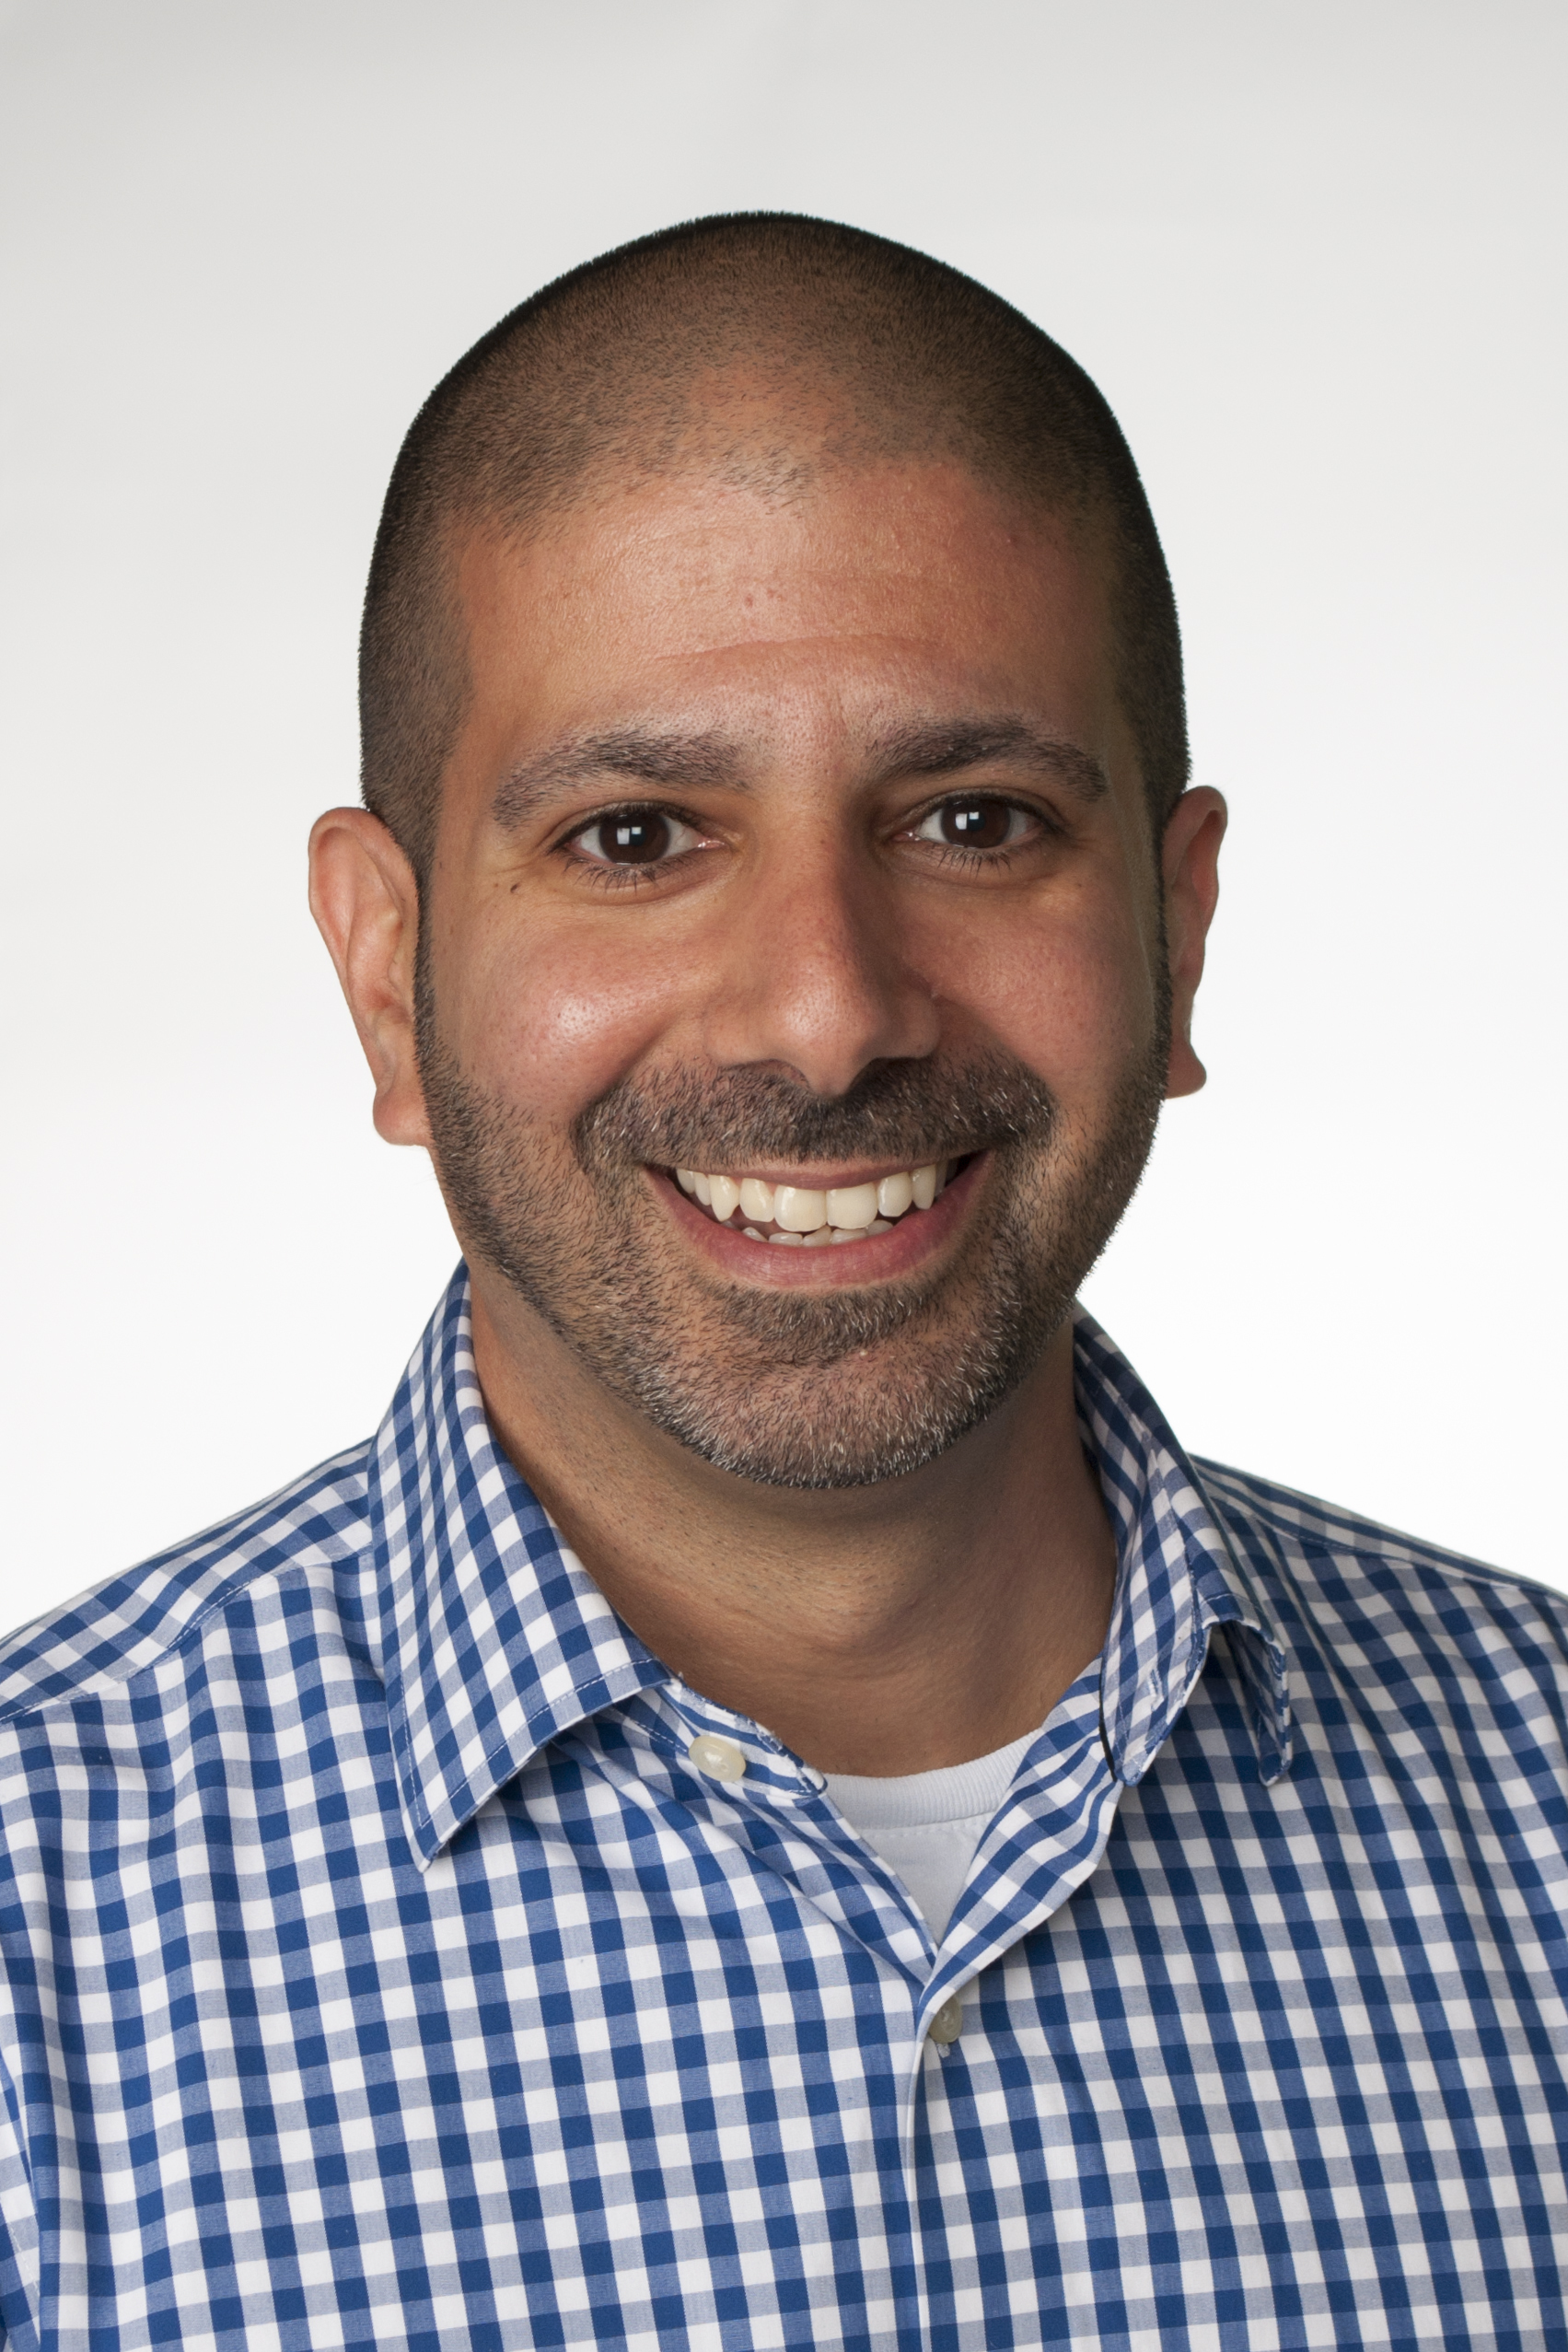 GEICO announces Joe Pusateri as marketing assistant vice president (Photo: Business Wire)